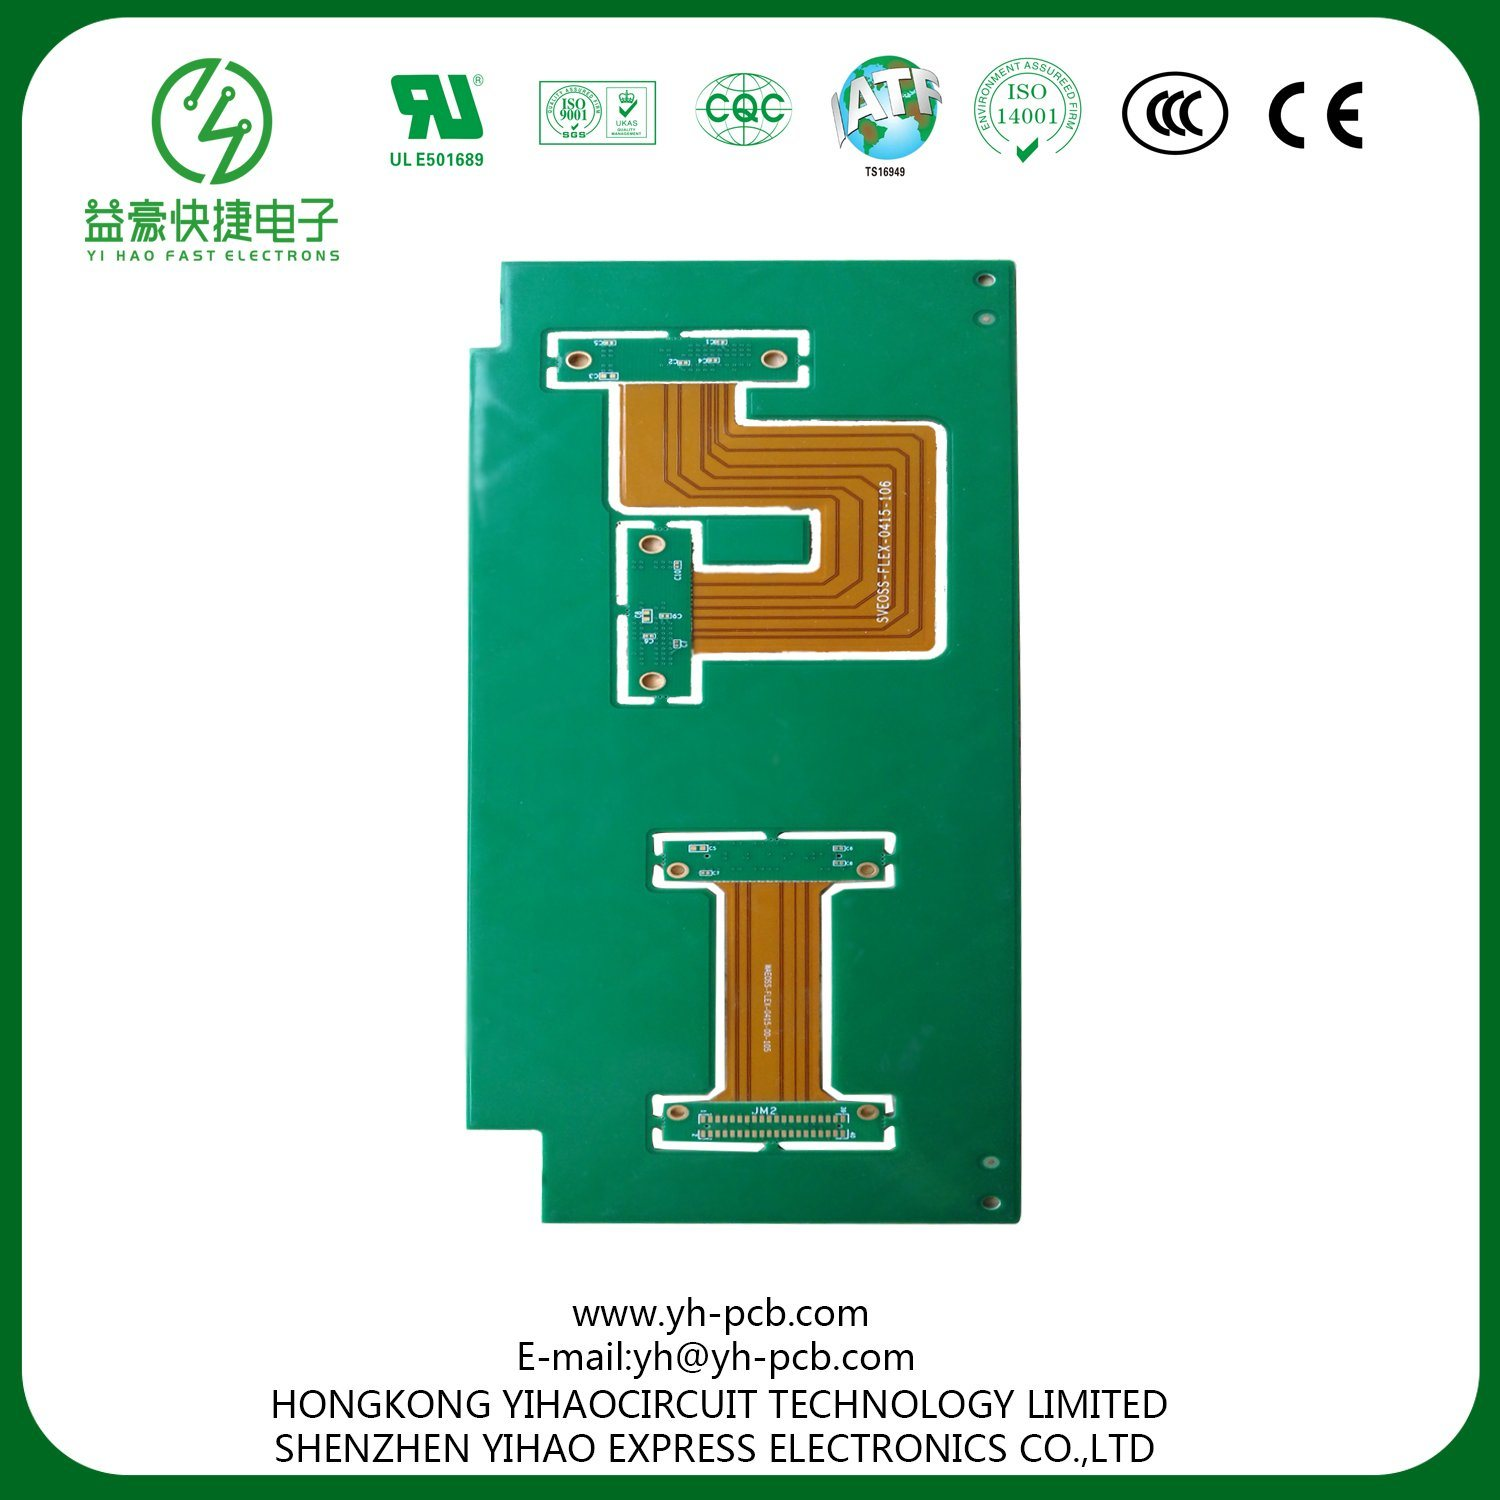 Rigid Flex Pcb Assy Source Layer 1 Oz Flexible Printed Circuit Board And Cover Film Supplier China For Automotive Medical Devices Manufacturer 1500x1500